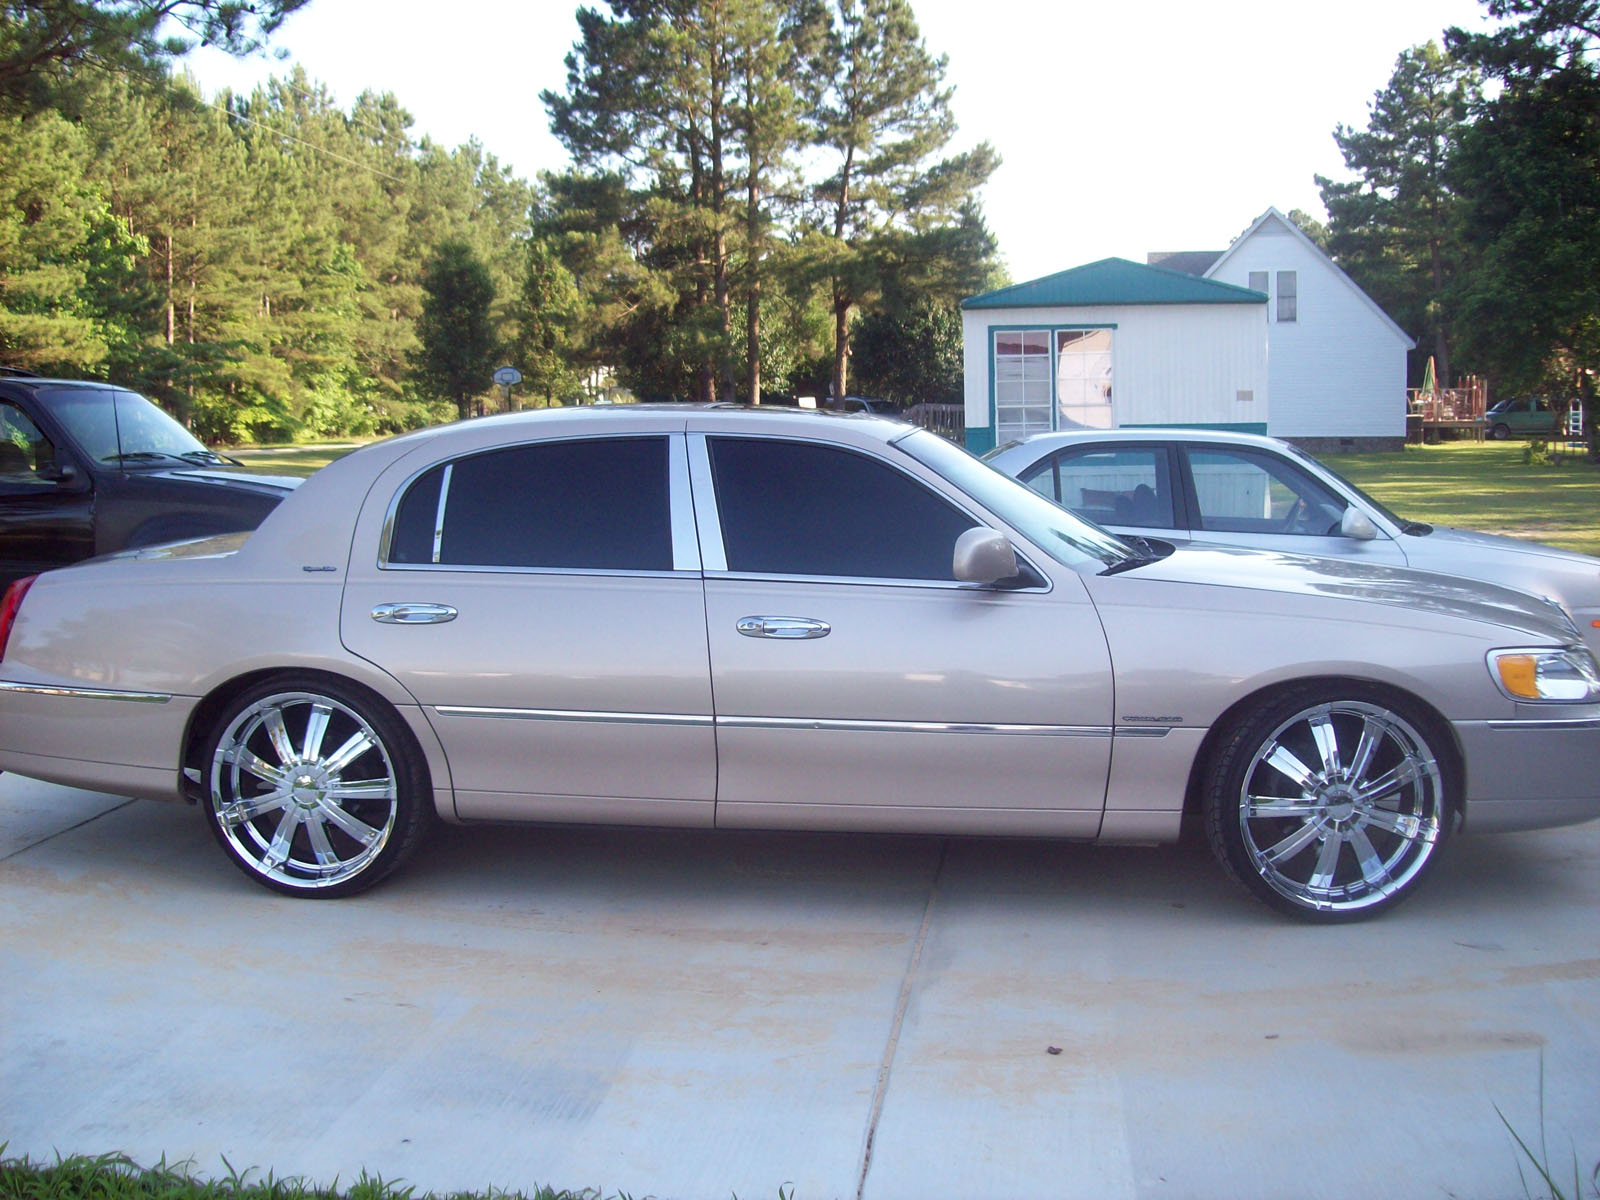 1998 Lincoln Town Car signature series For Sale | Maxton North ...